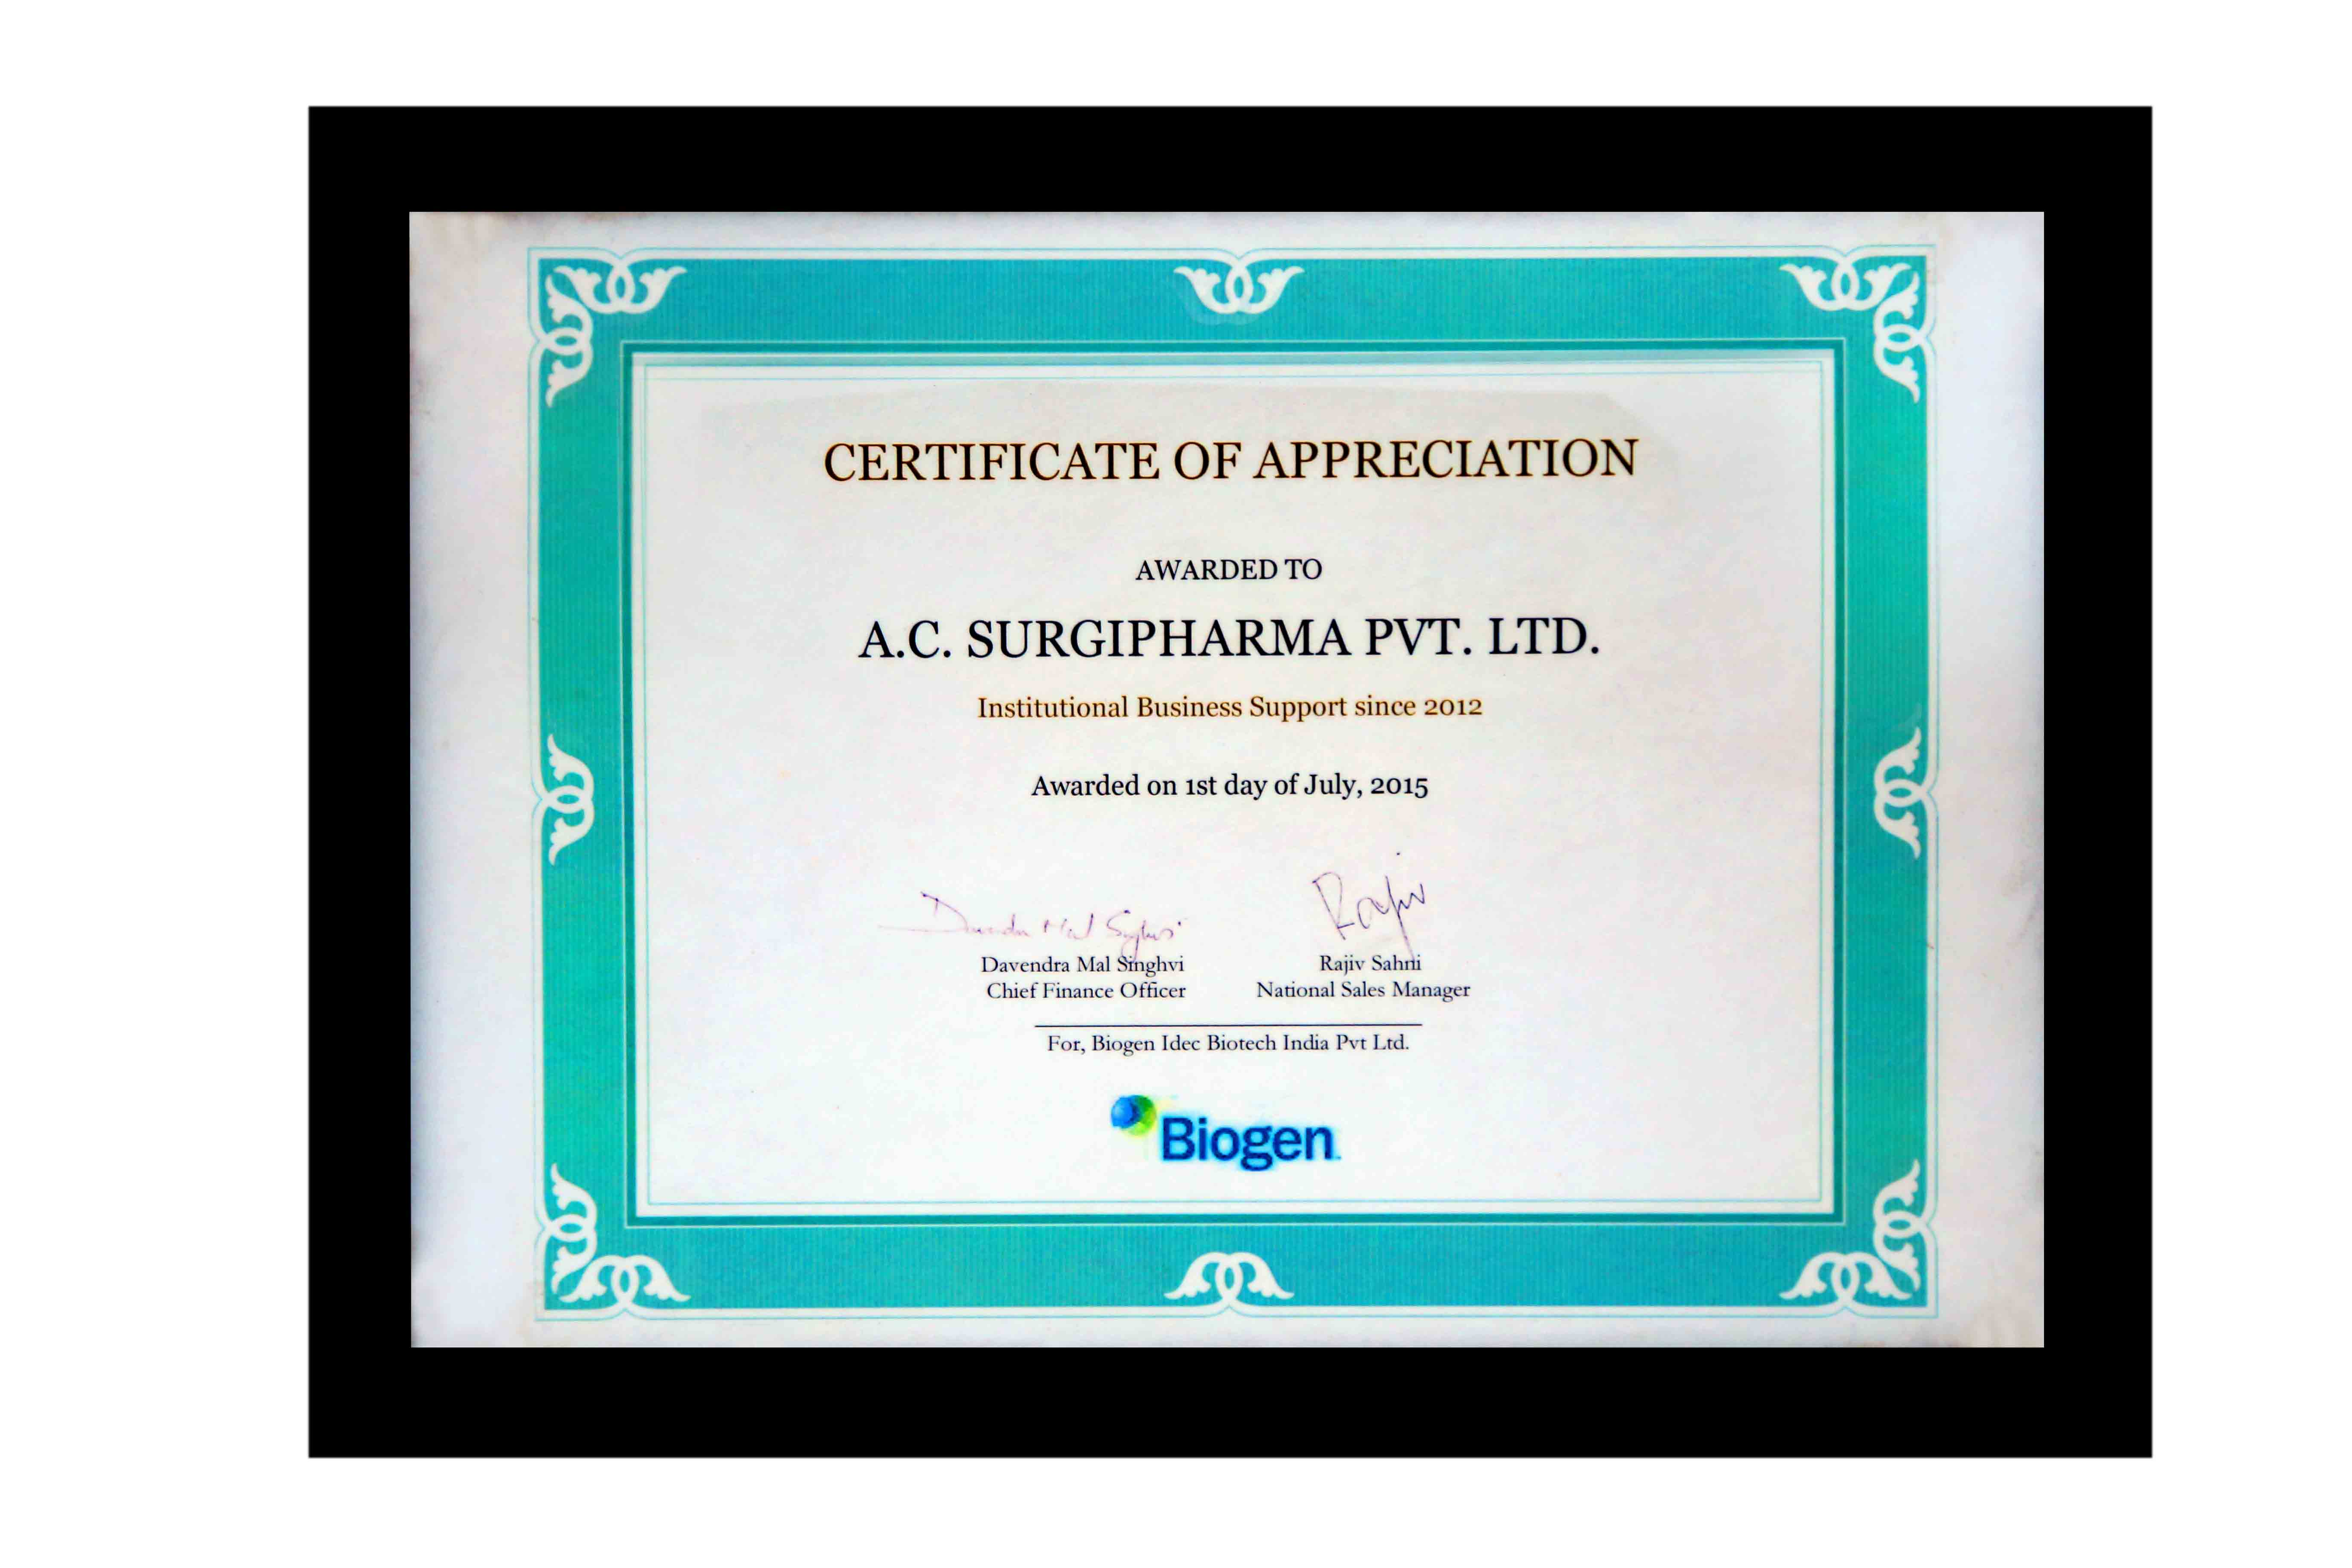 Certificate of Appreciation By Biogen